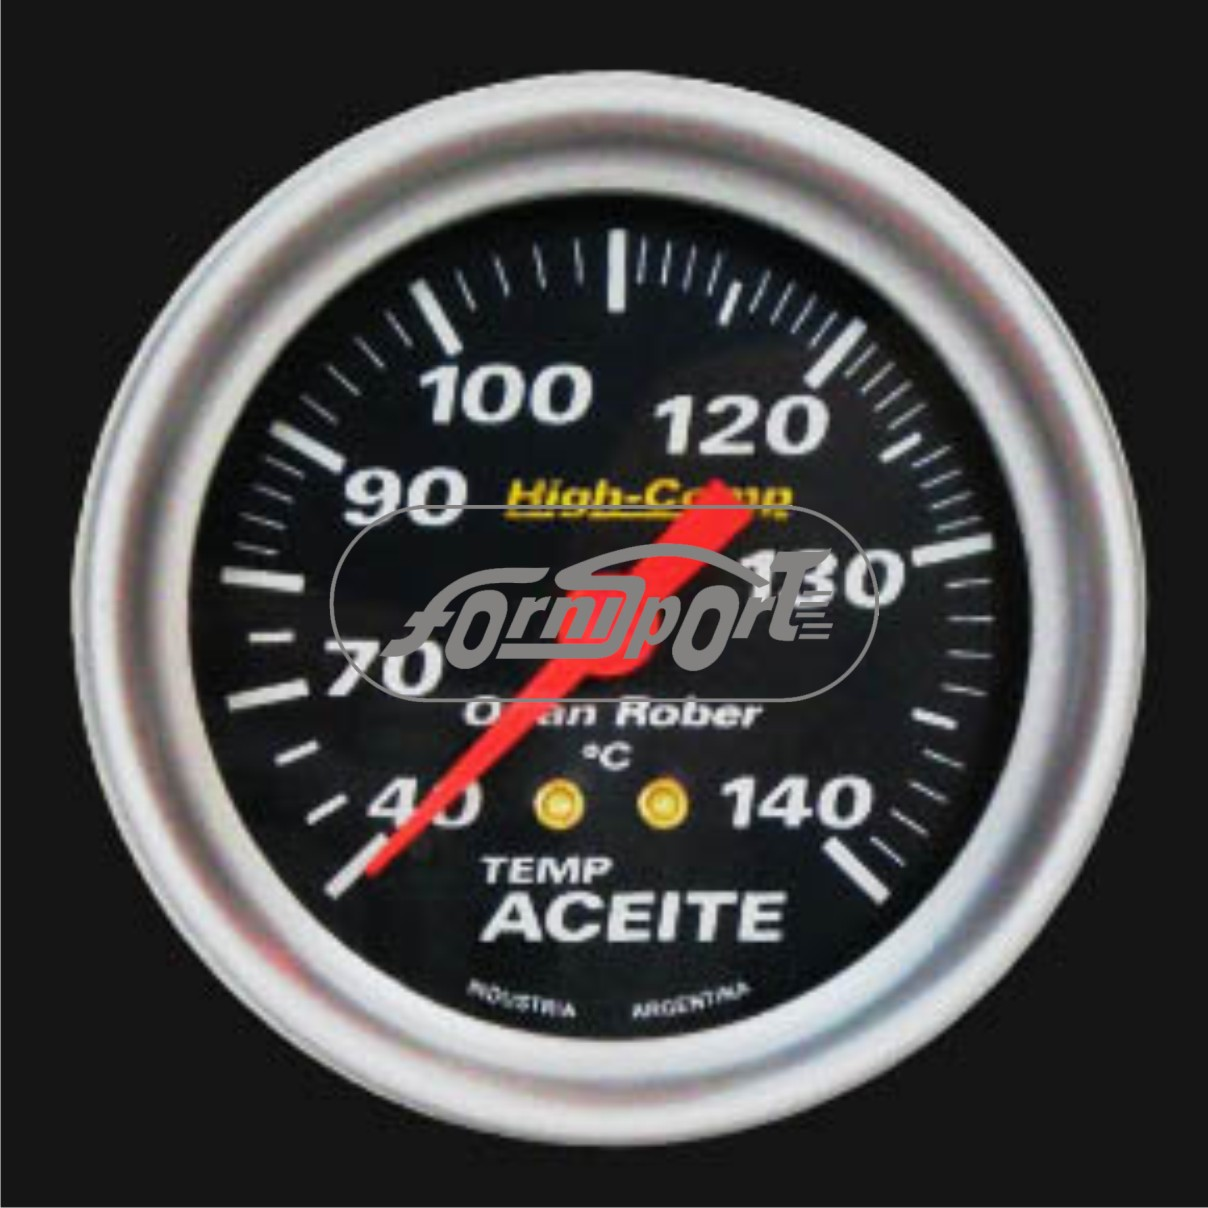 Marcador Temp Ace 66 mm N O.Rober